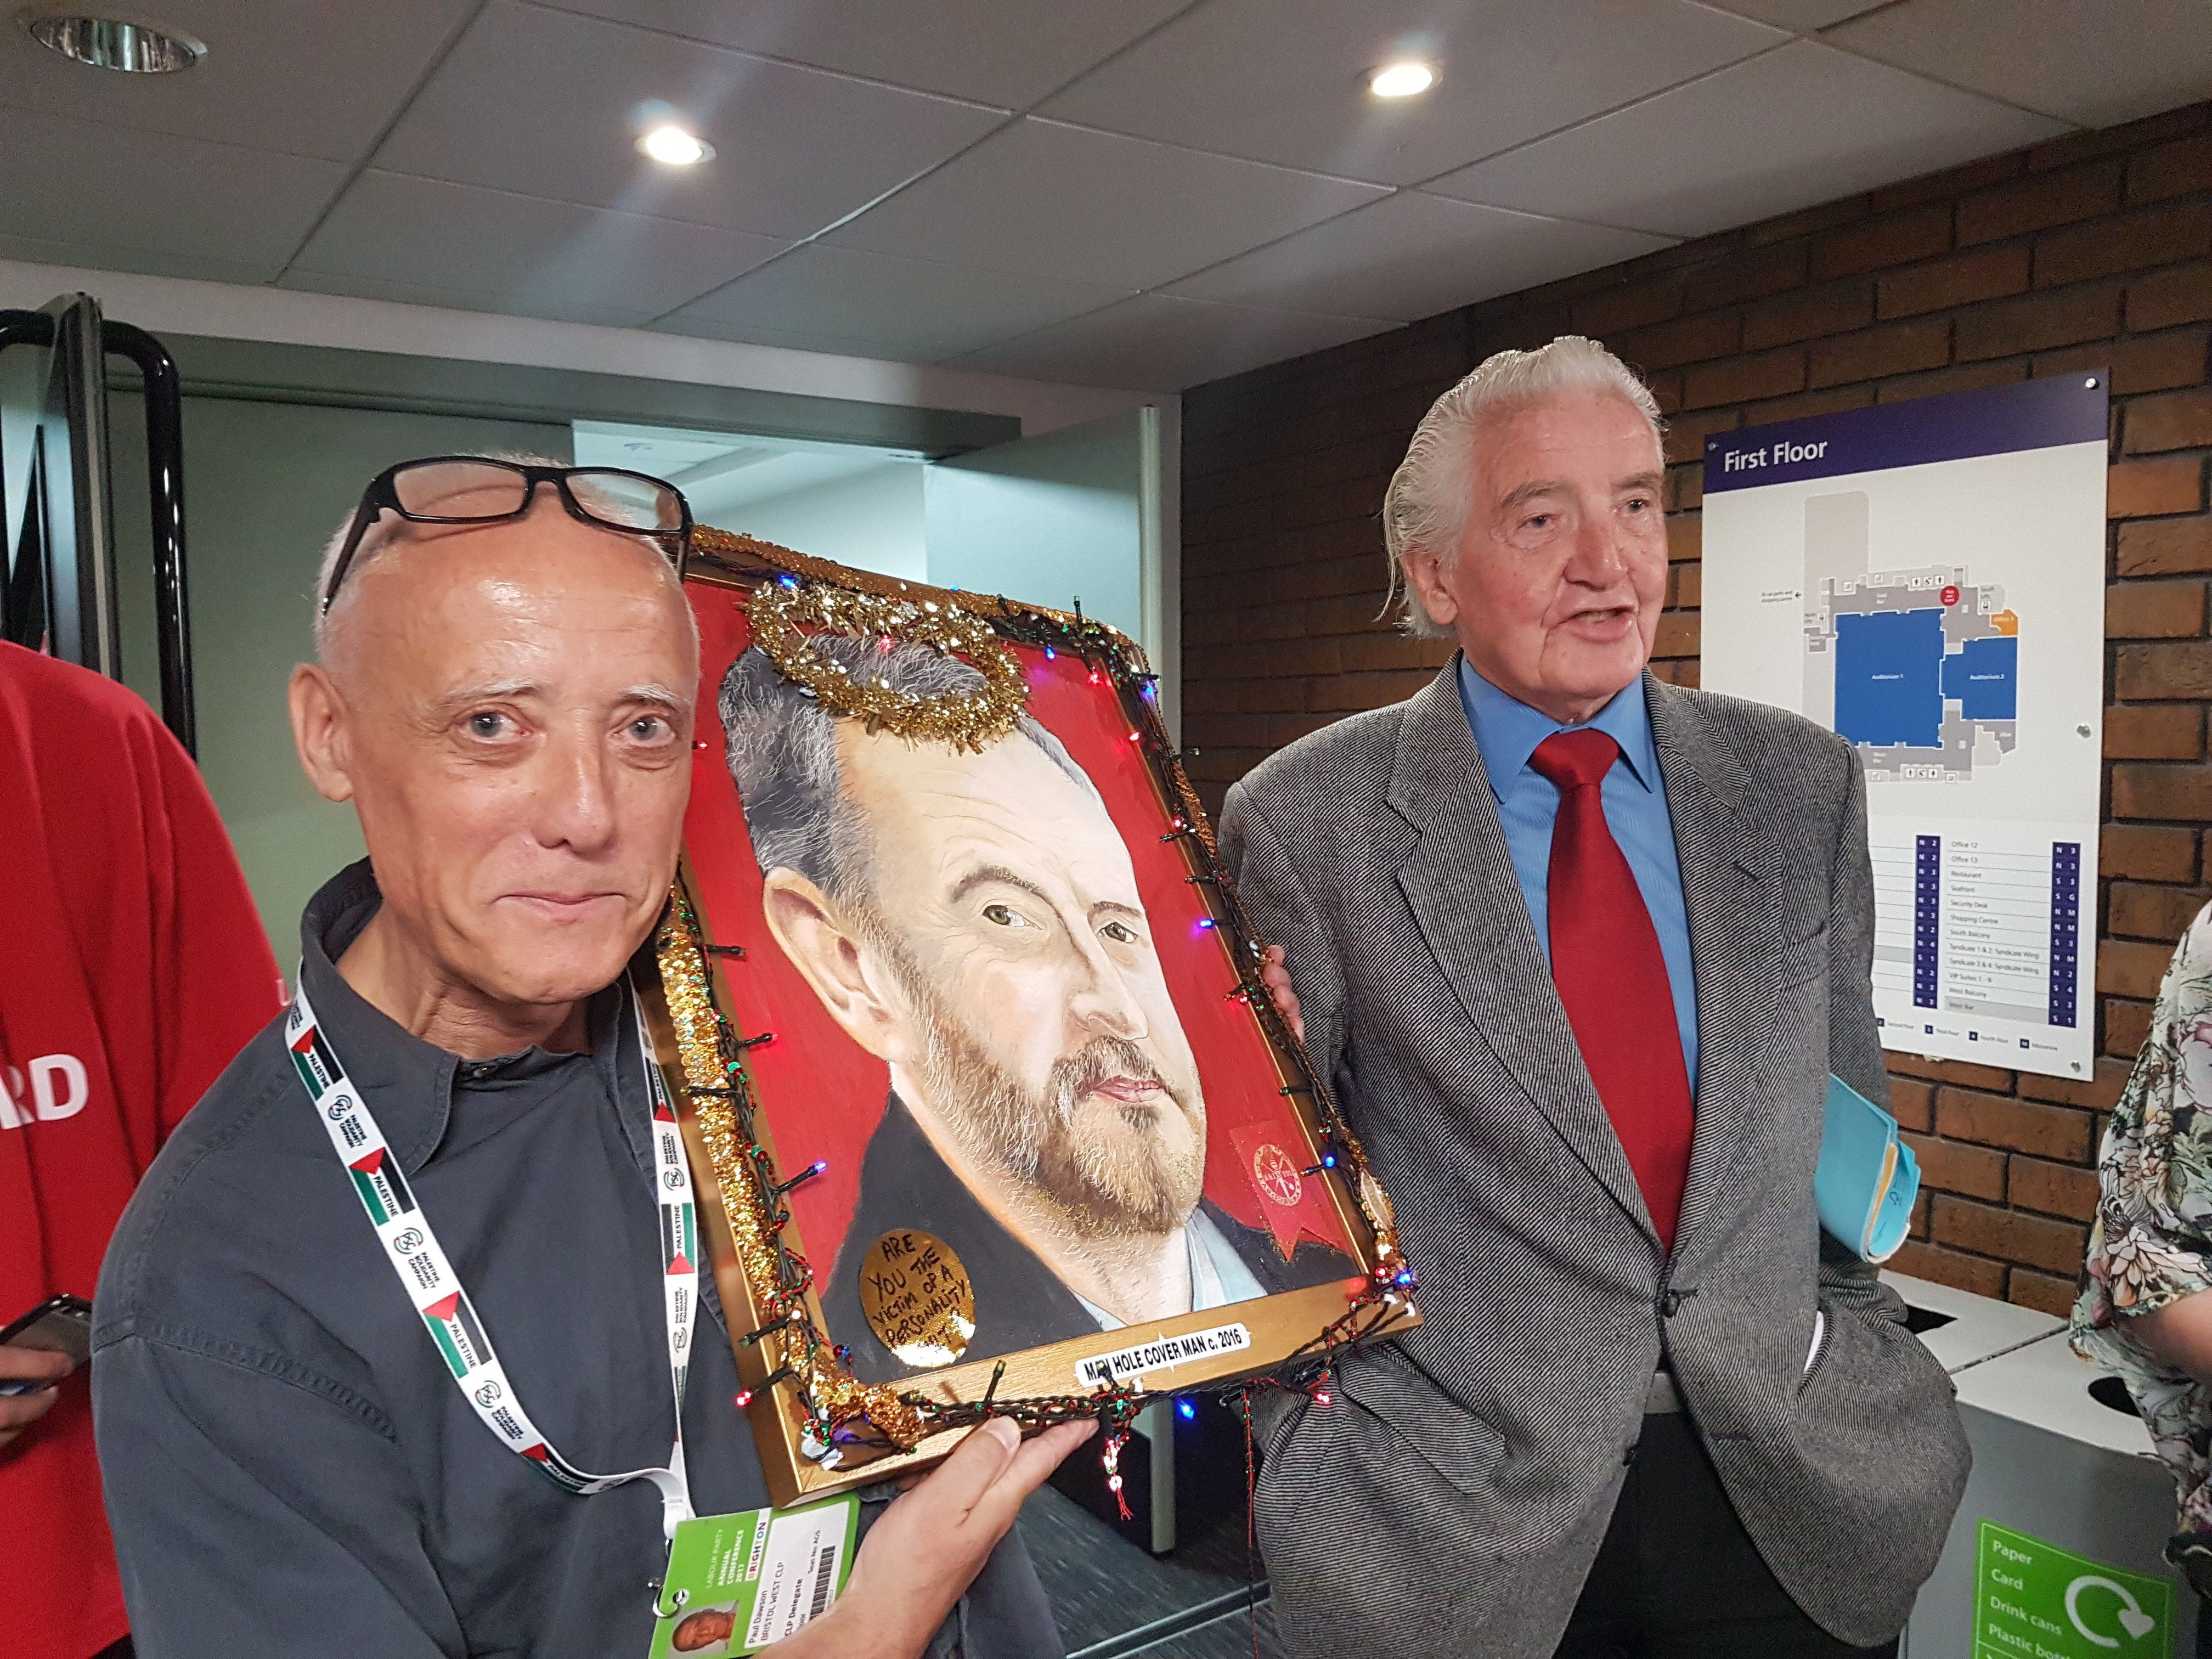 Labour Member Explains Why He Took A Portrait Of Jeremy Corbyn Adorned With Fairy Lights To